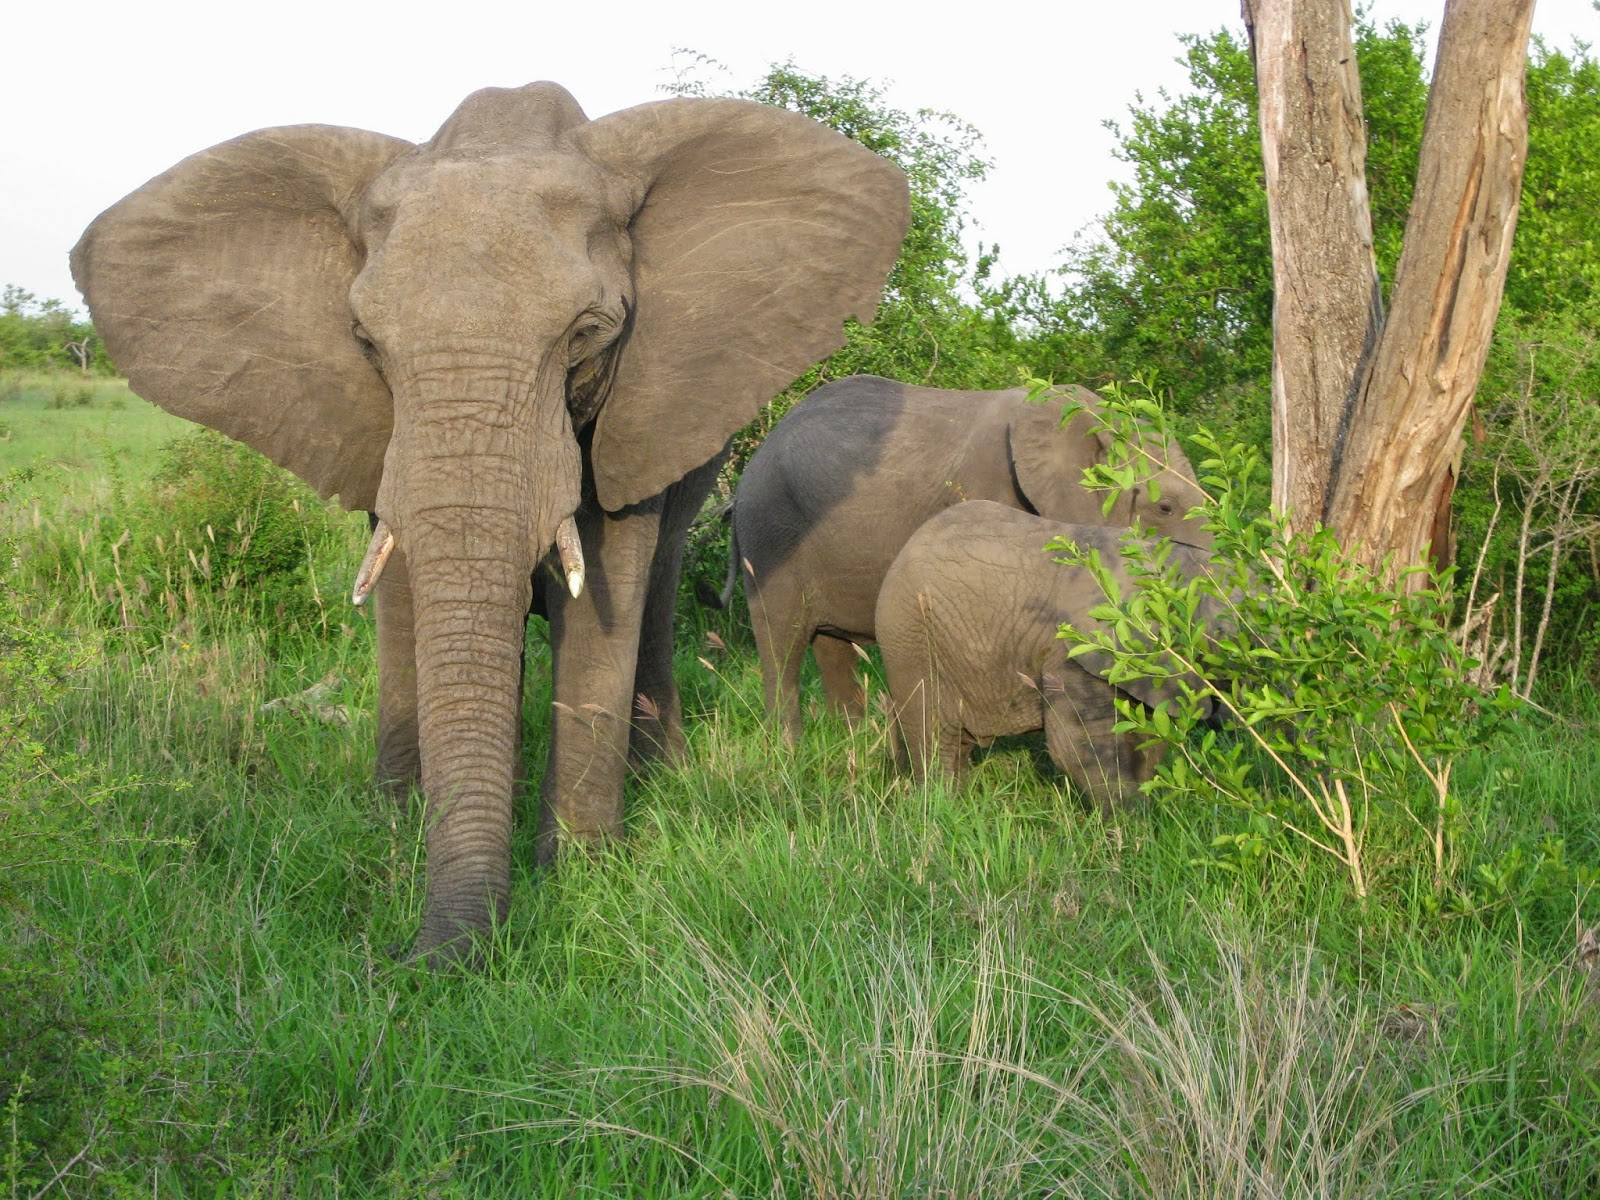 Sabi Sands - Elephants and baby elephants